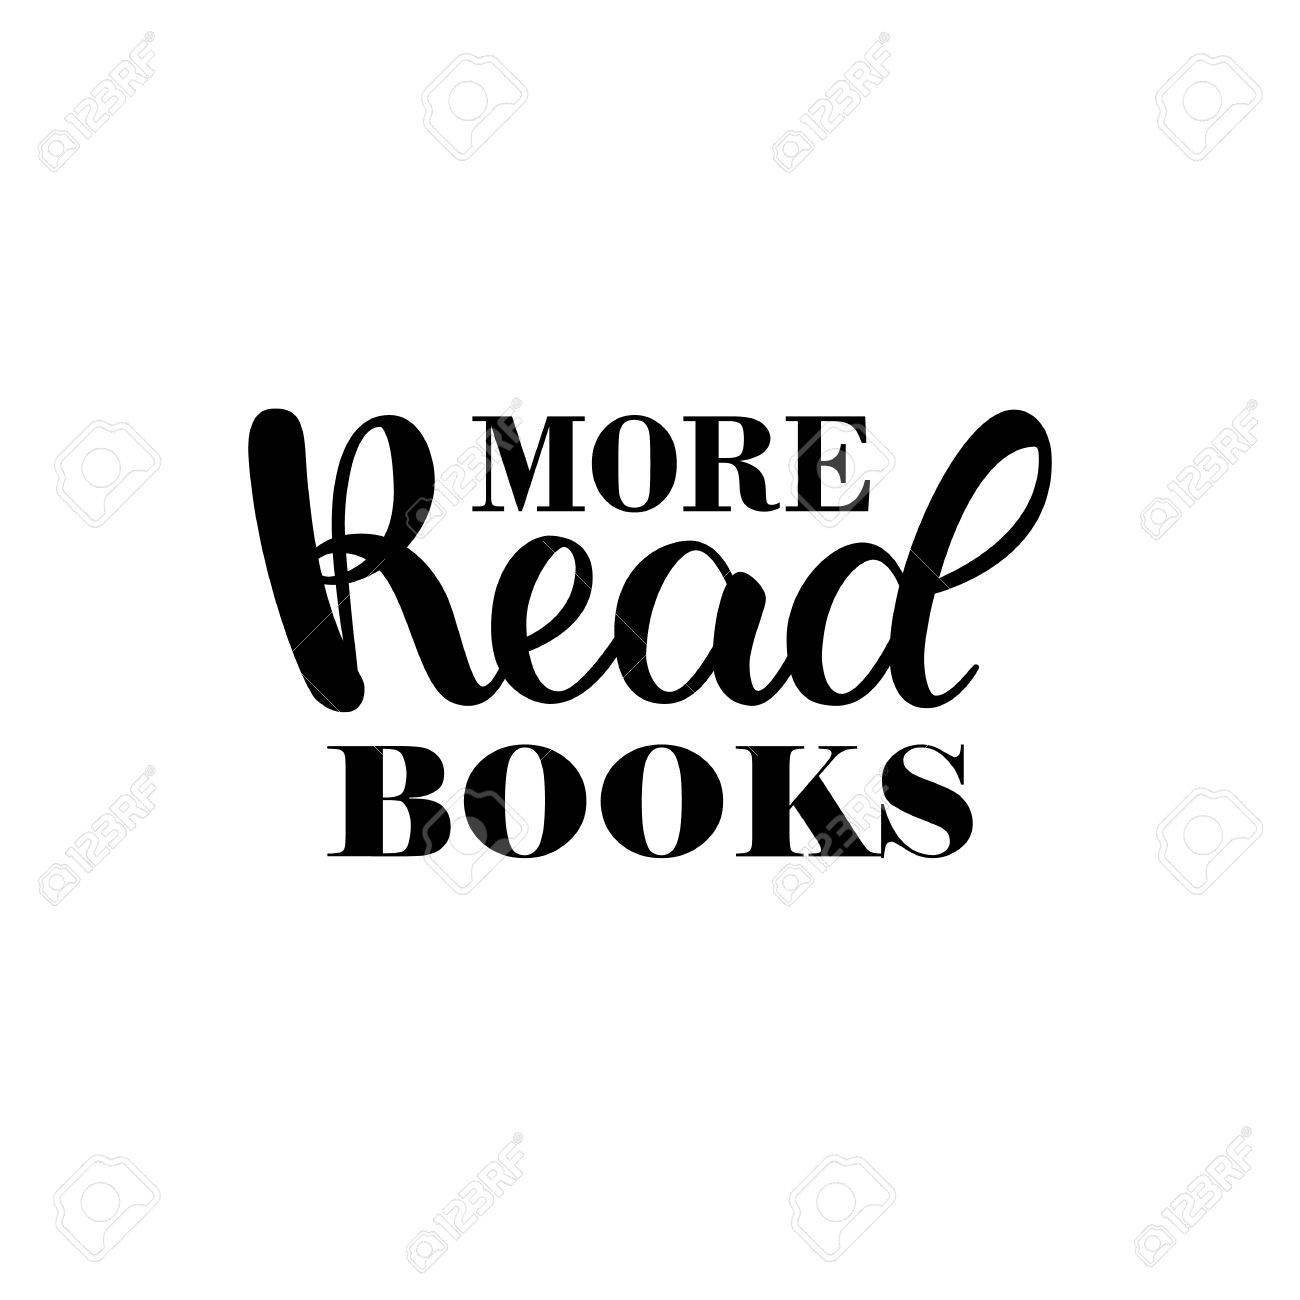 Inspirational Quotes From Books Read More Bookinspirational And Motivational Quoteshand